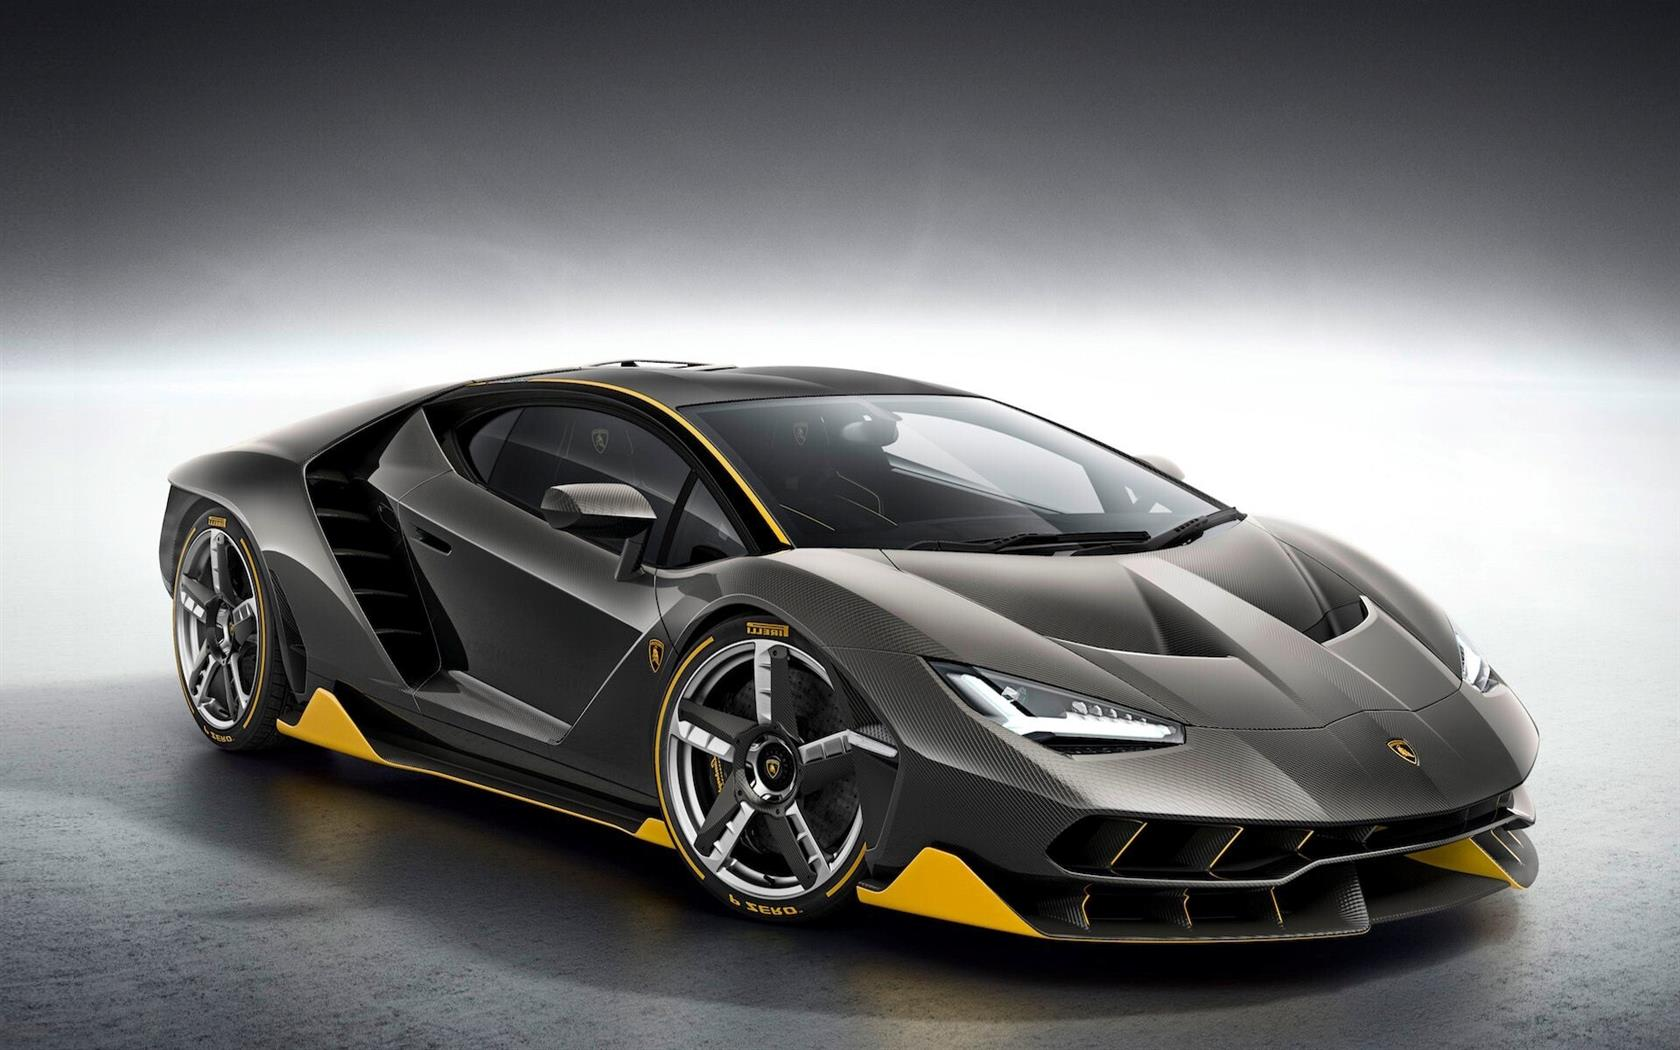 1680x1050 New Lamborghini Centenario 2016 Car HD Wallpapers